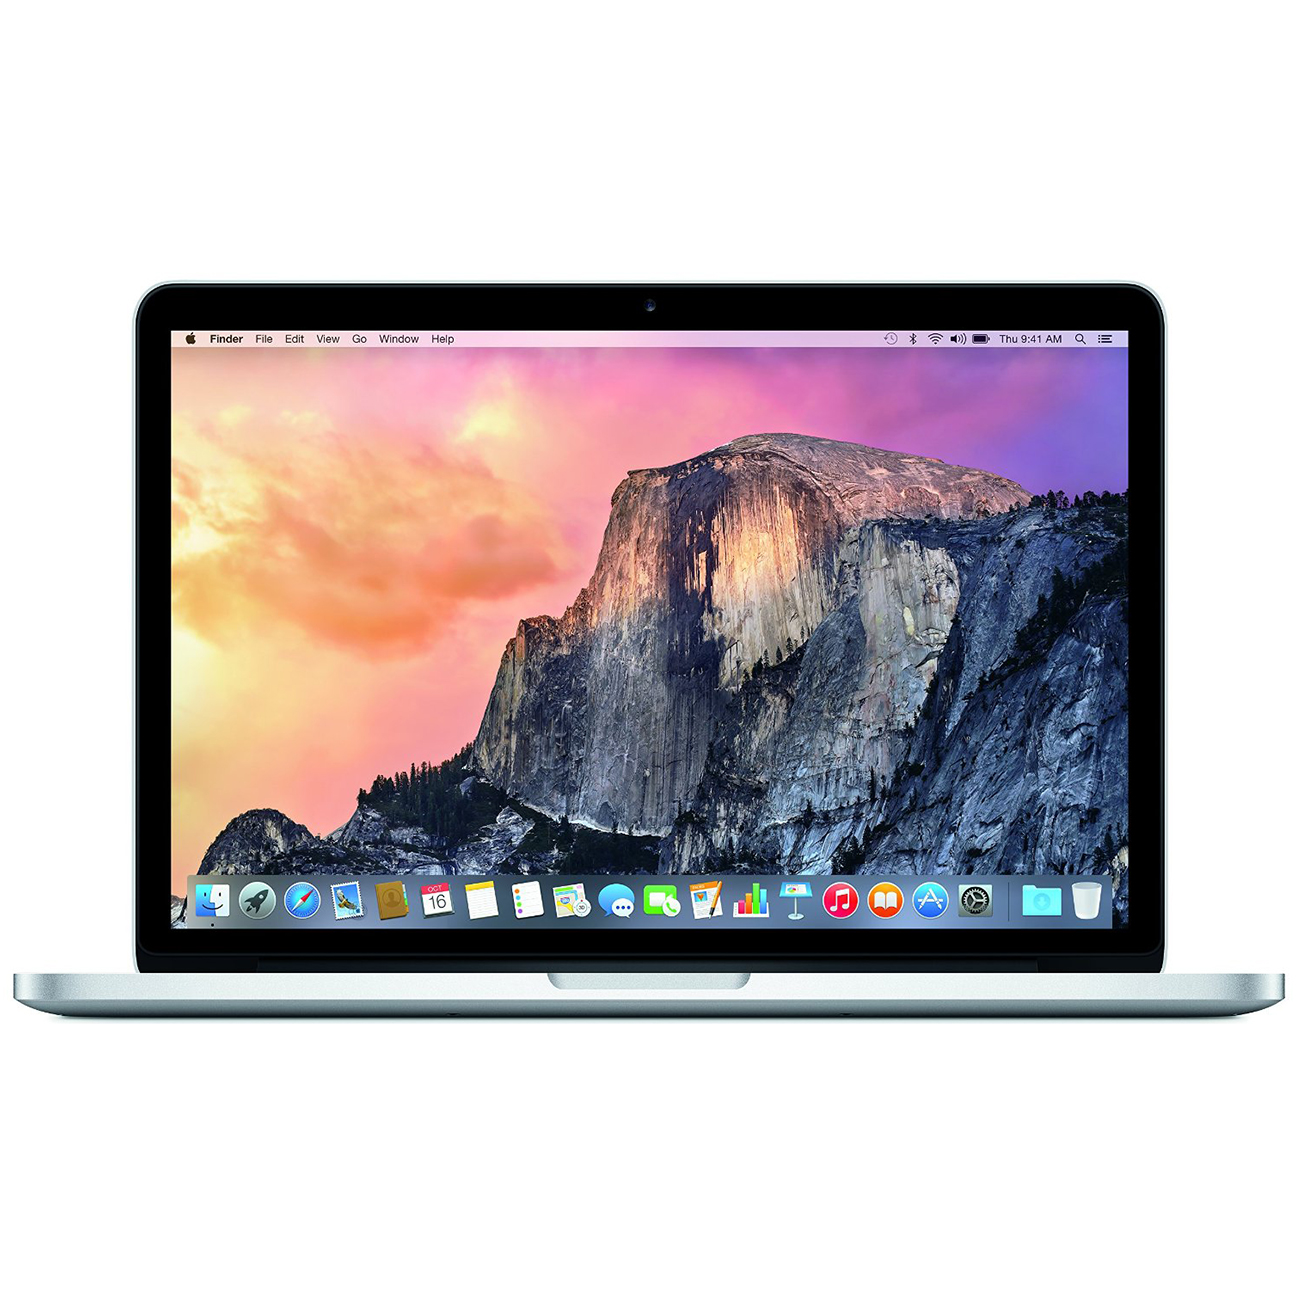 "Apple MacBook Pro Core i5 2.5GHz 4GB 500GB DVDRW 13.3"" No..."